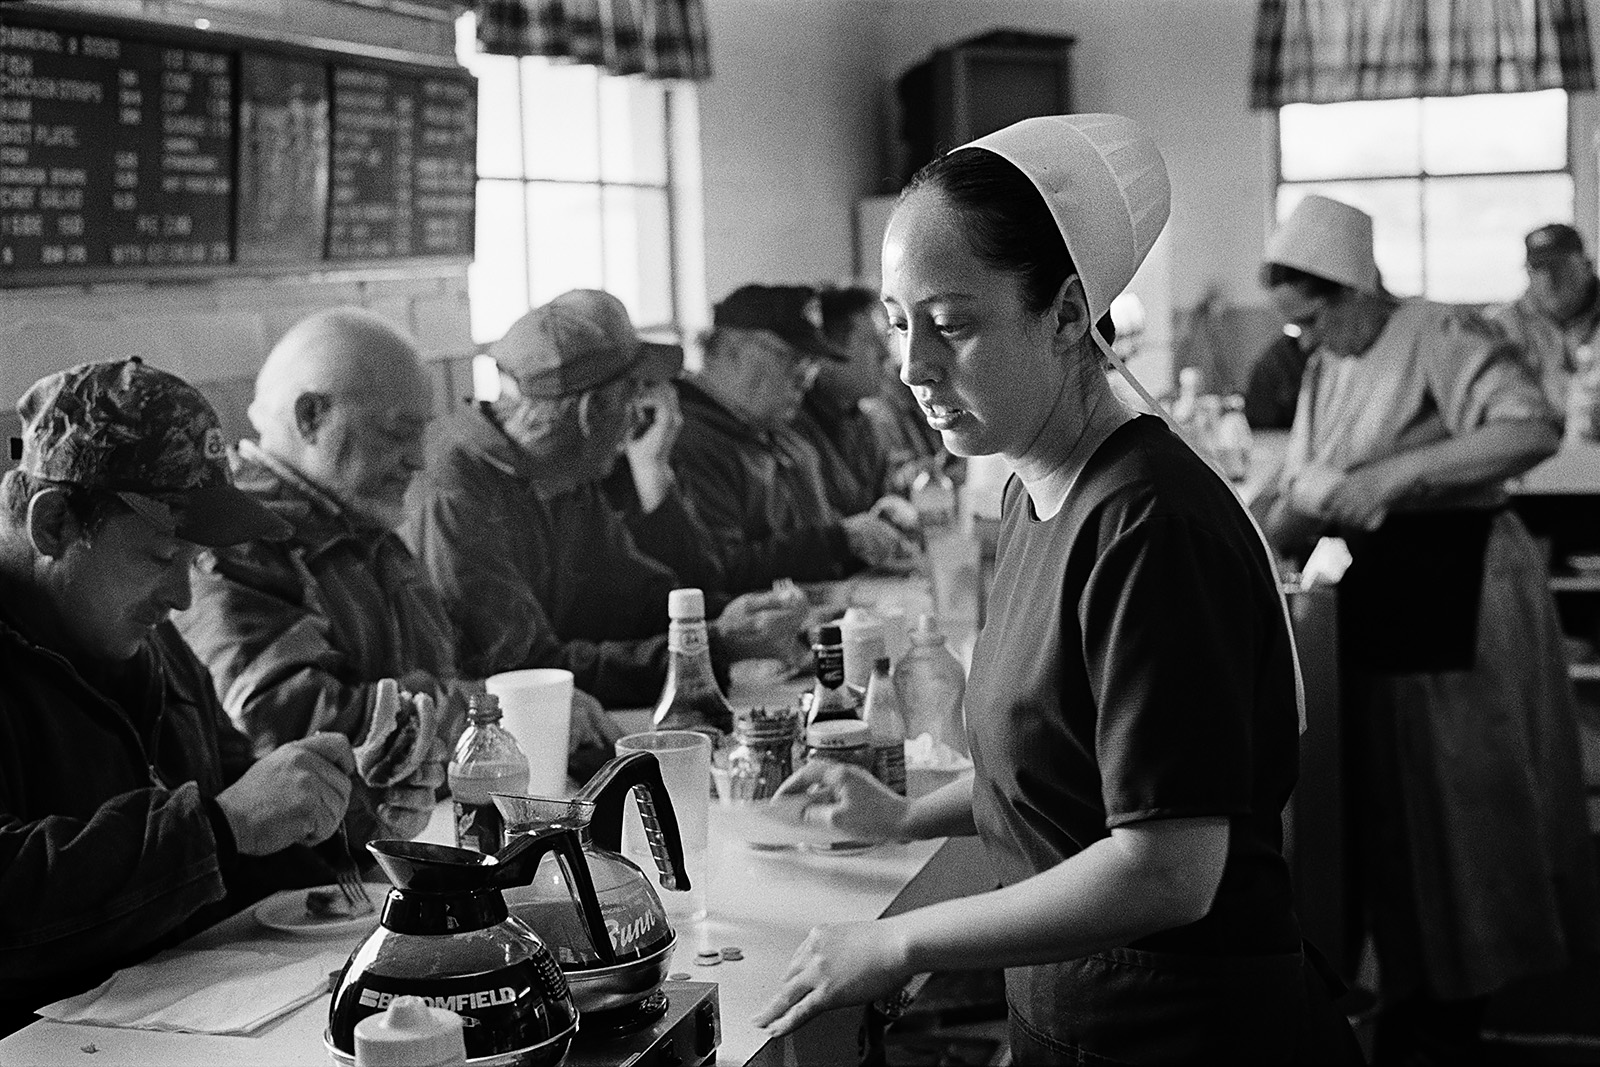 Livestock Auction Diner, Sugar Creek, Ohio, 2009